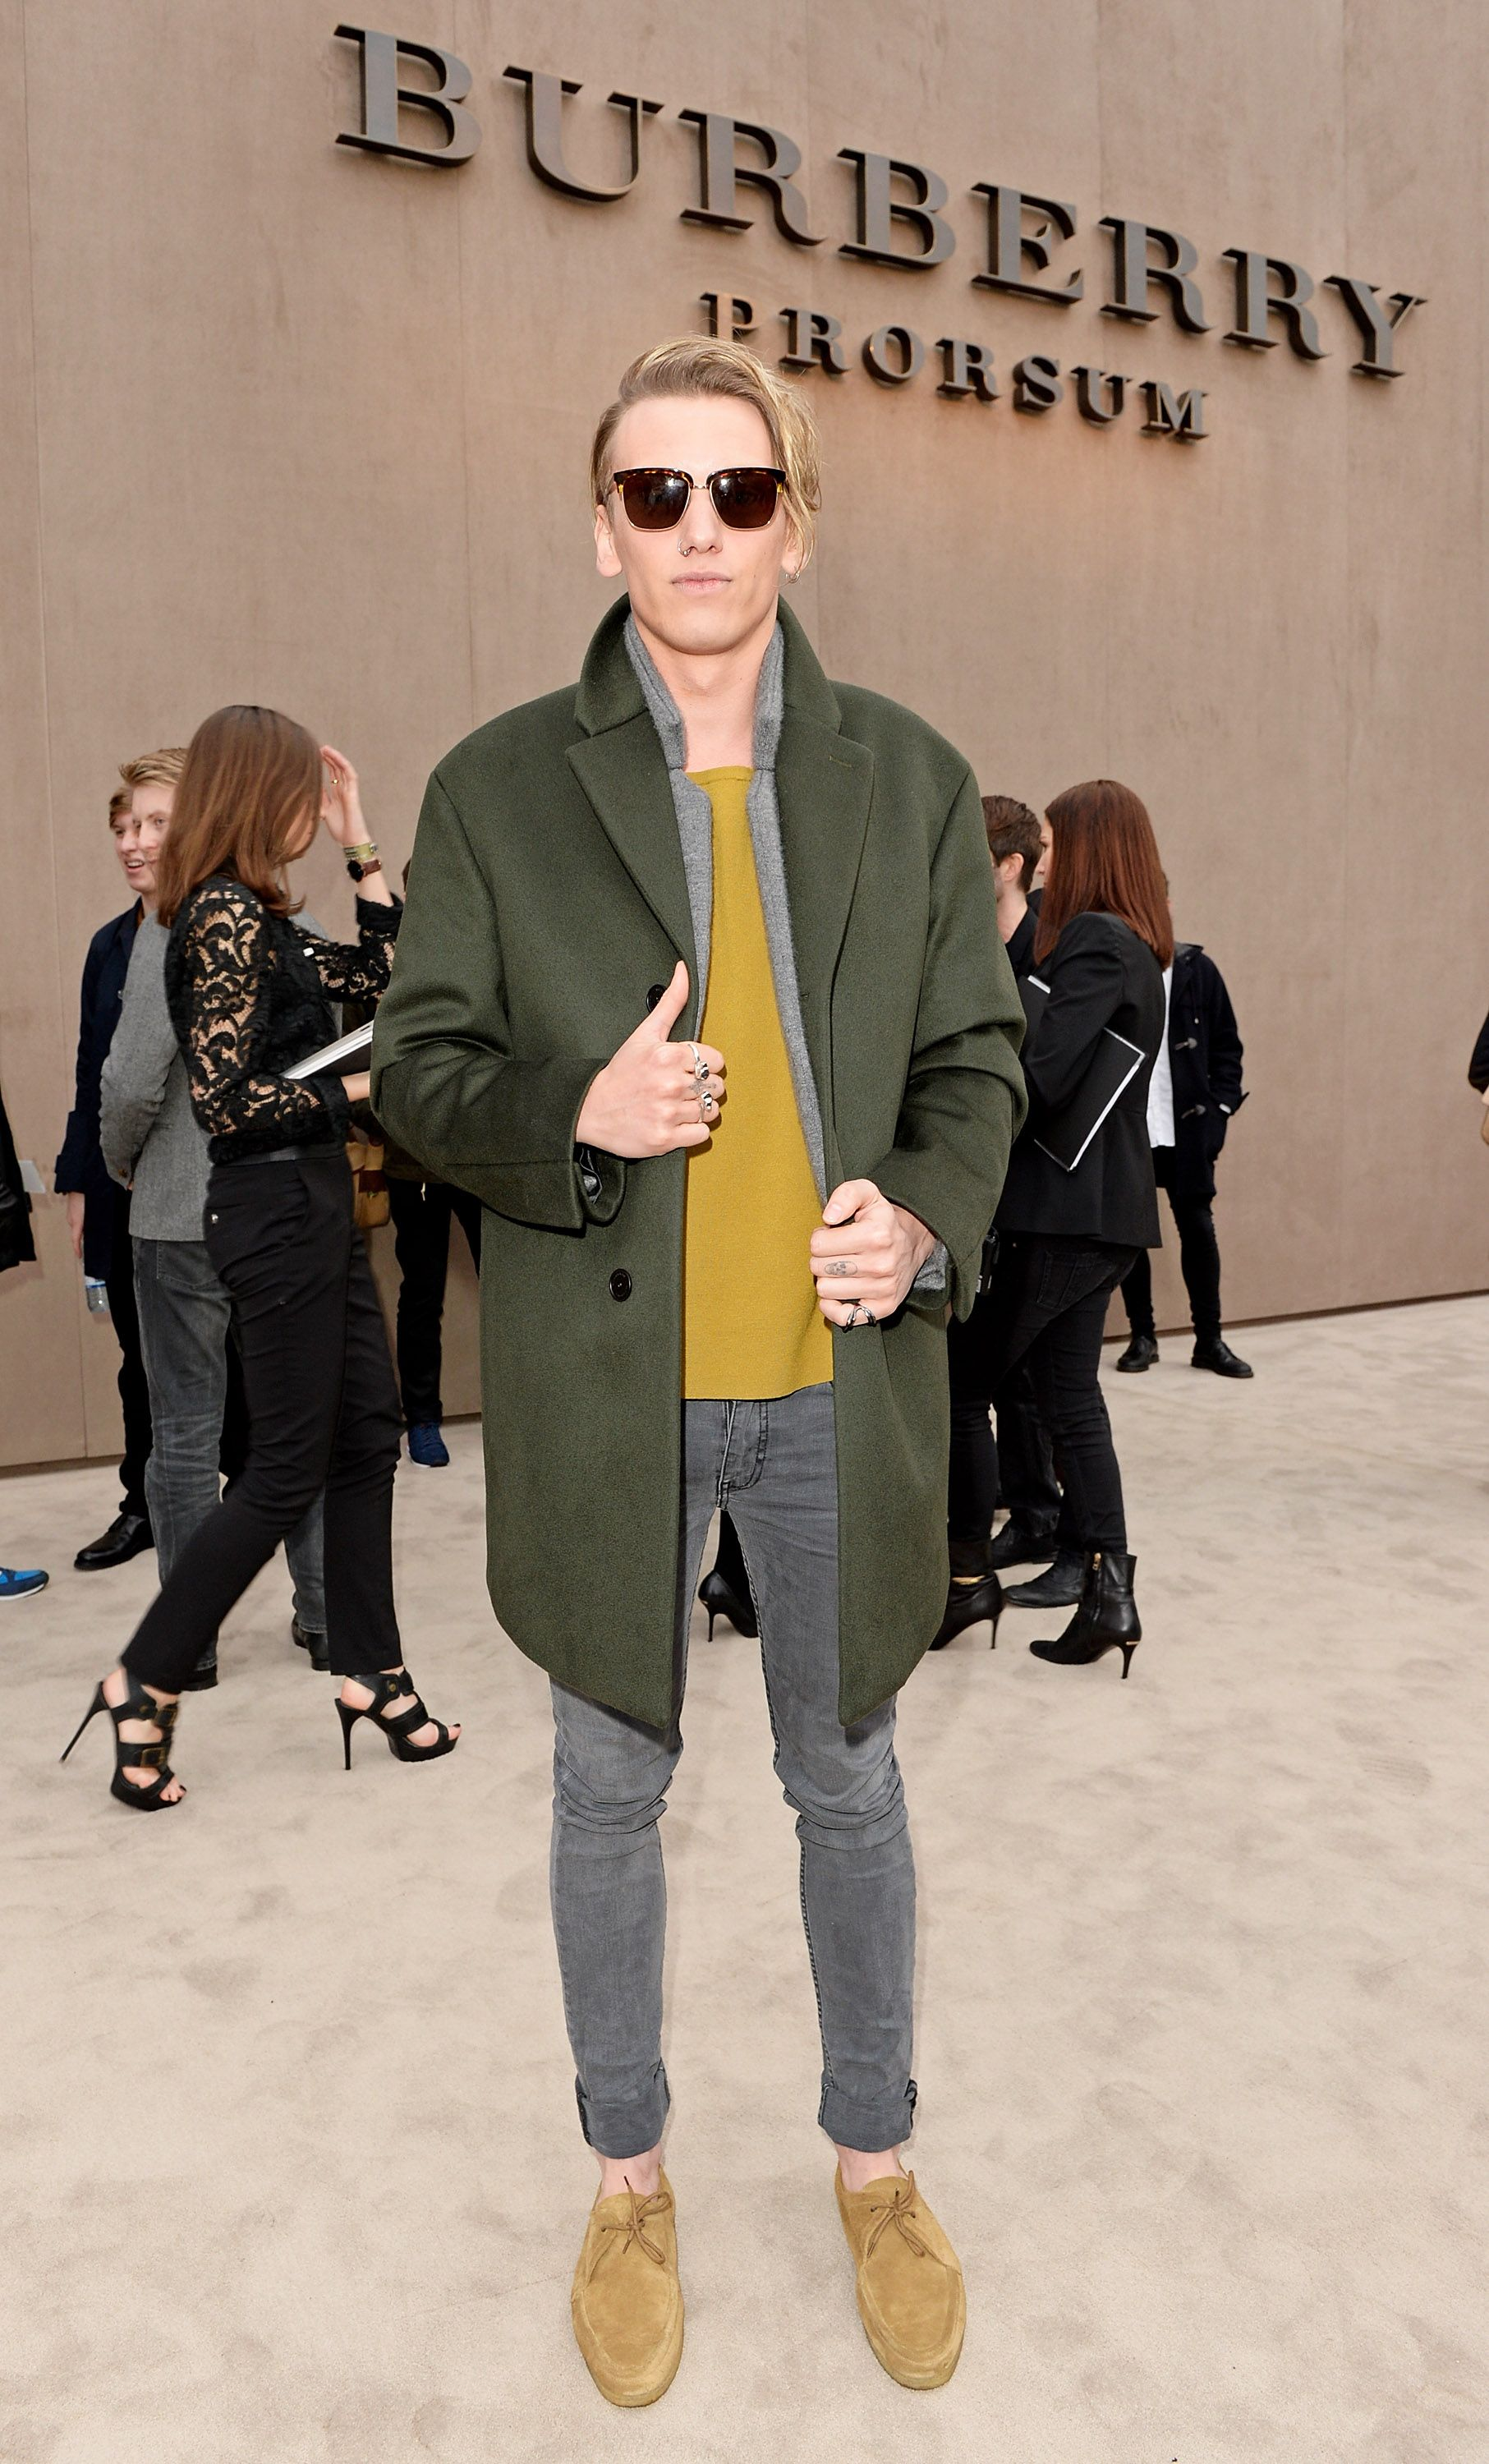 British actor and S/S14 campaign star Jamie Campbell Bower wearing Burberry and sunglasses from The Trench Collection outside the Prorsum Menswear A/W14 show space in London